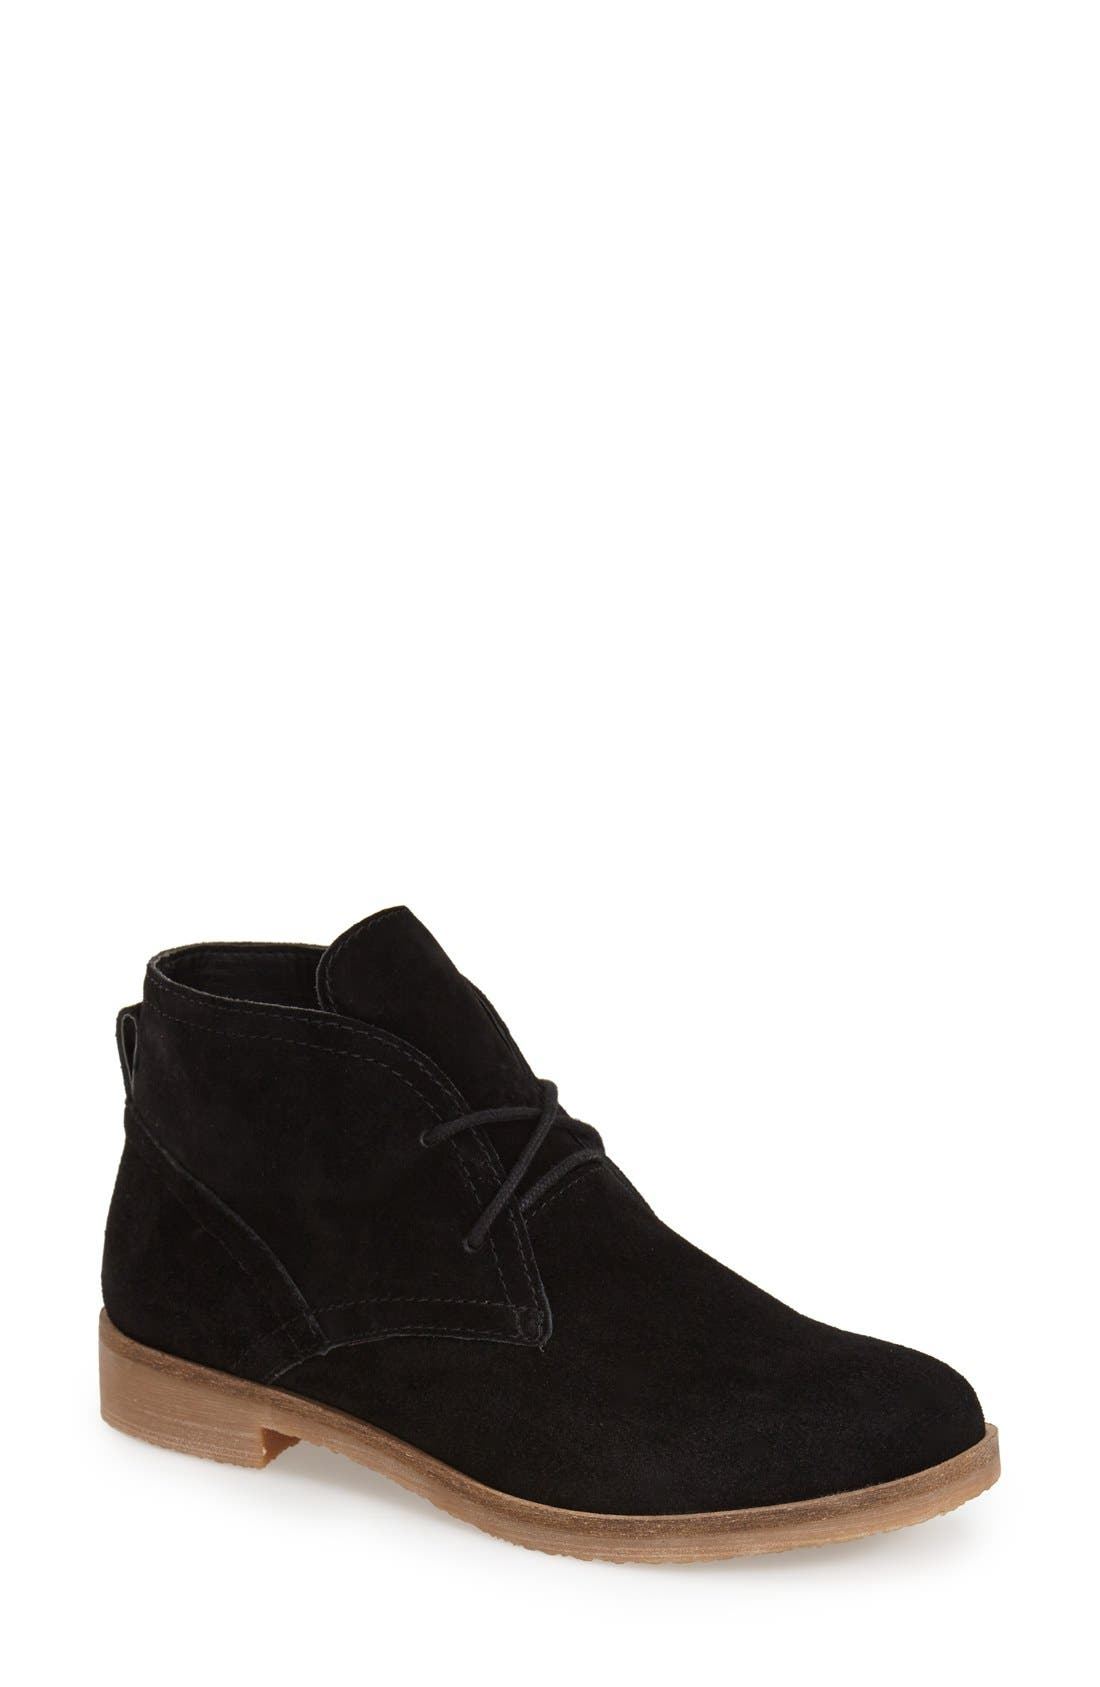 LuckyBrand'Garboh'Lace-UpBootie,                         Main,                         color, 001